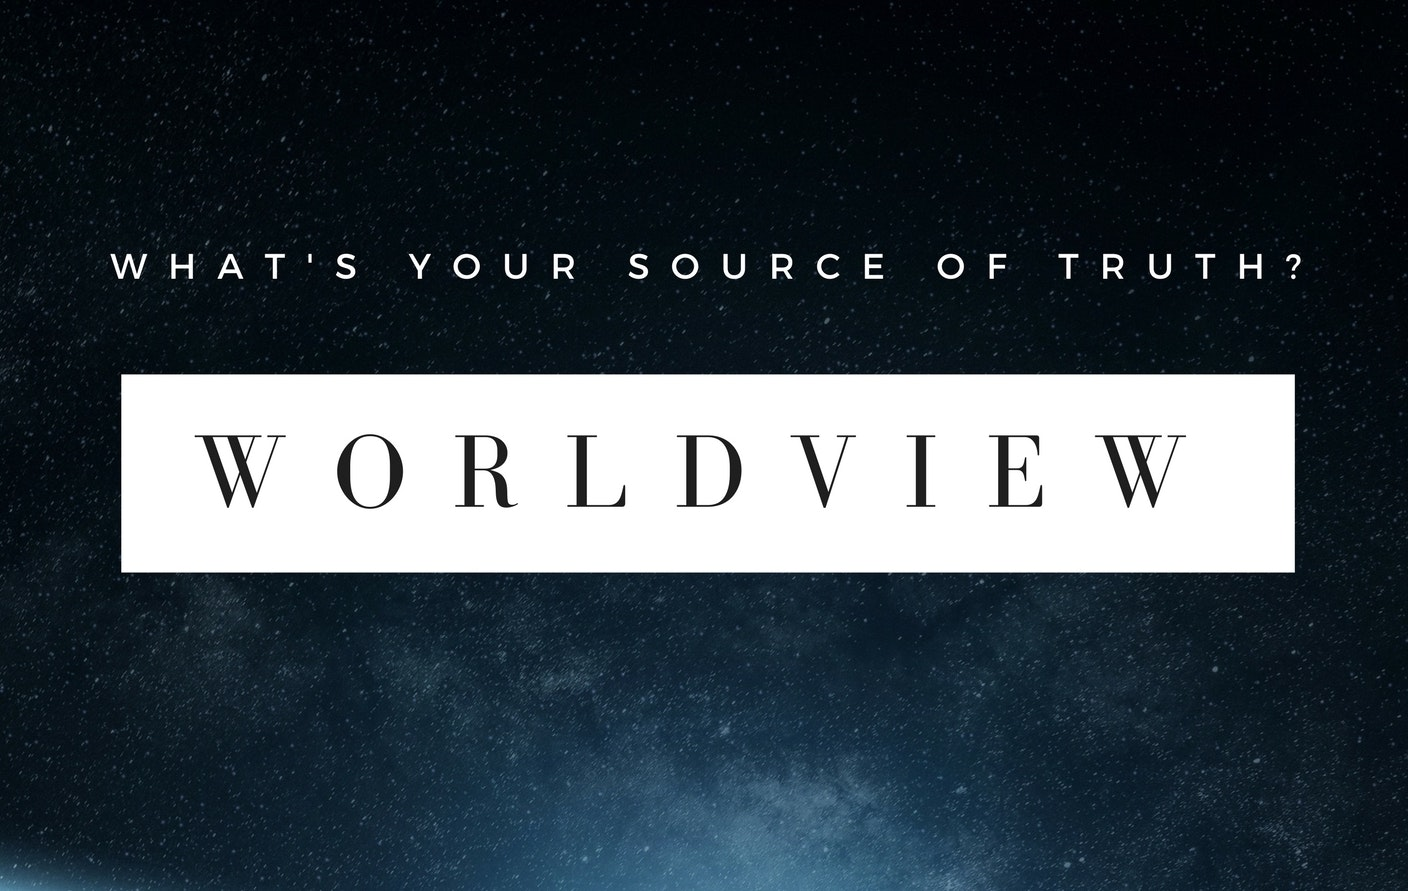 Worldview: What's Your Source of Truth?